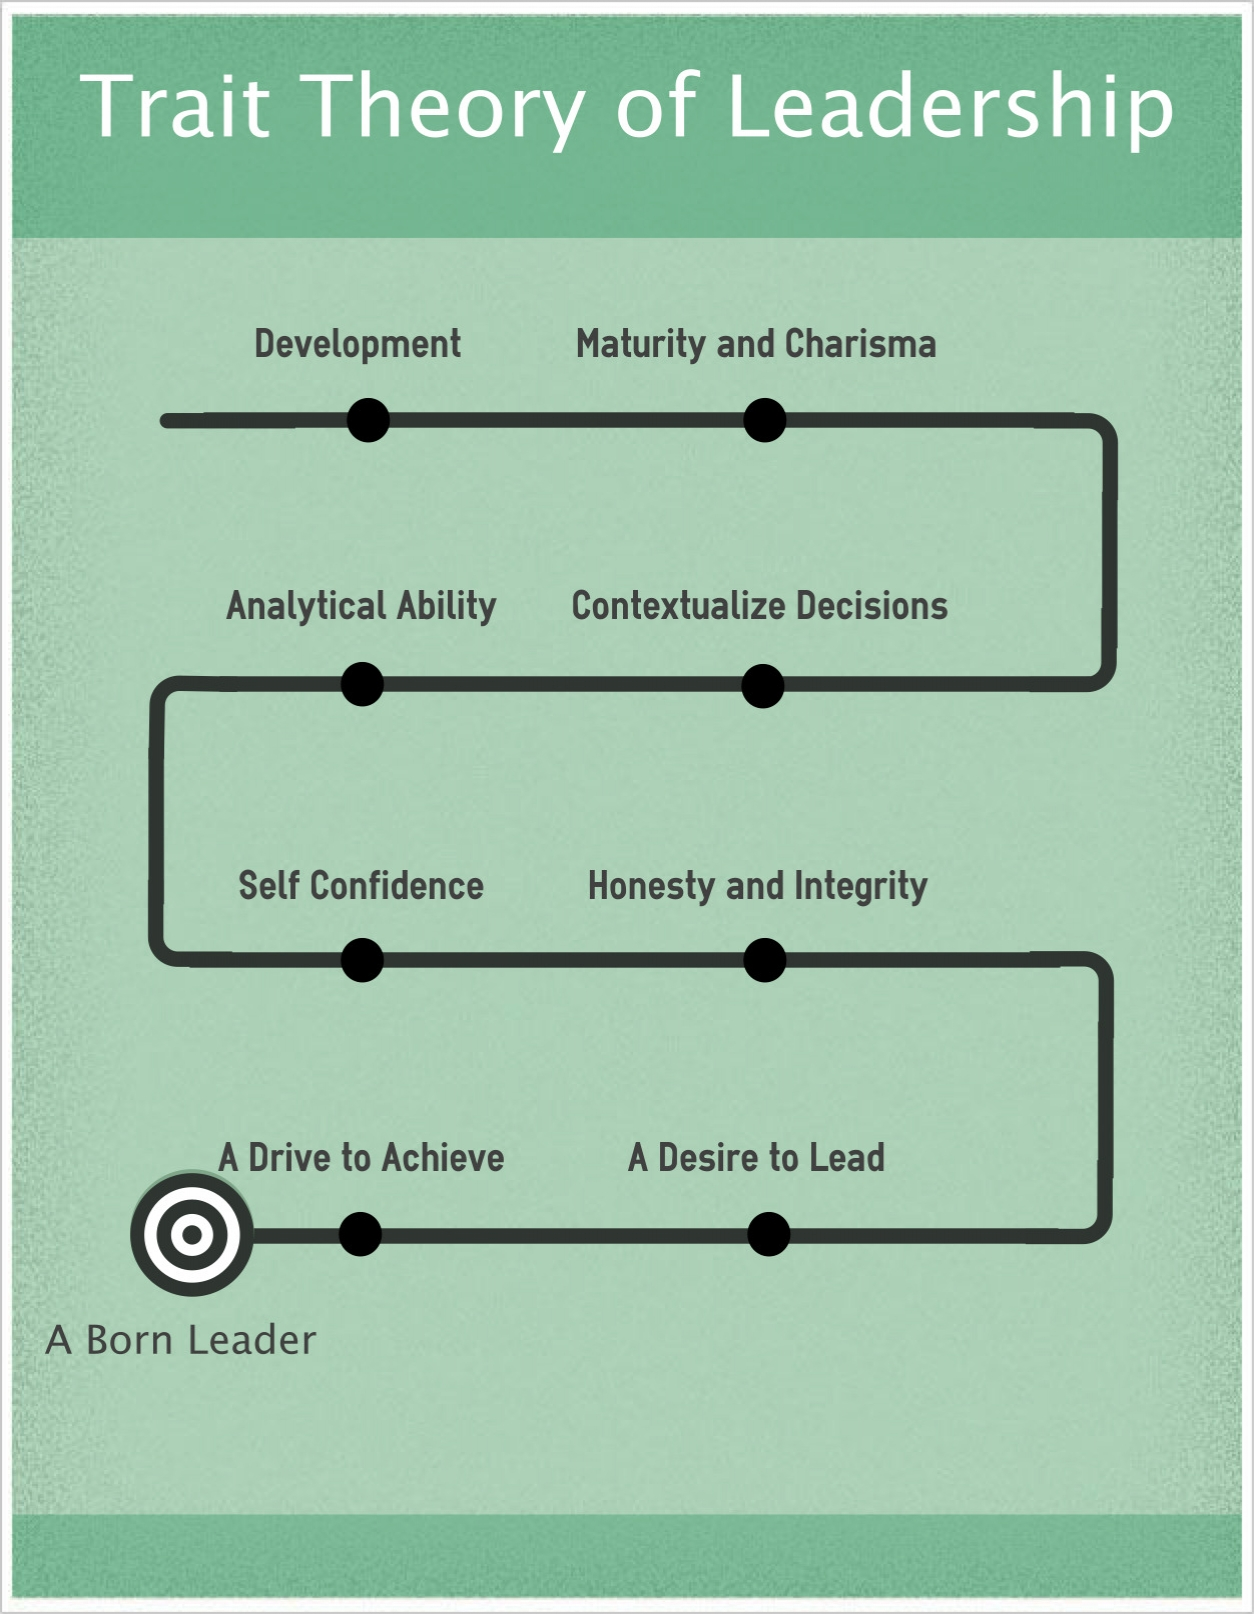 trait theory The trait theory of leadership is an early assumption that leaders are born and due to this belief, those that possess the correct qualities and traits are better suited to leadership this theory often identifies behavioural characteristics that are common in leaders.